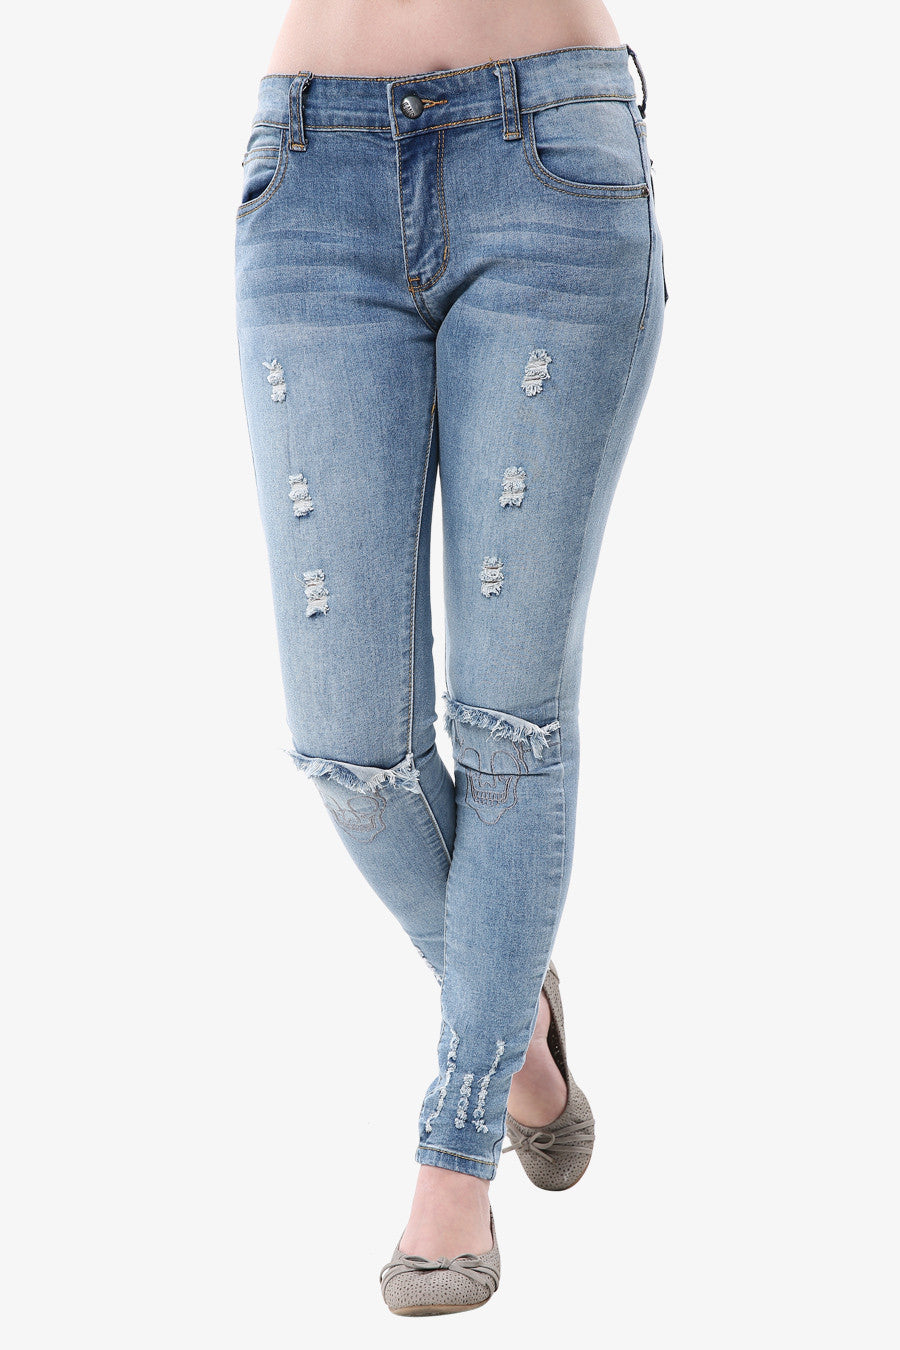 skull ragged jeans